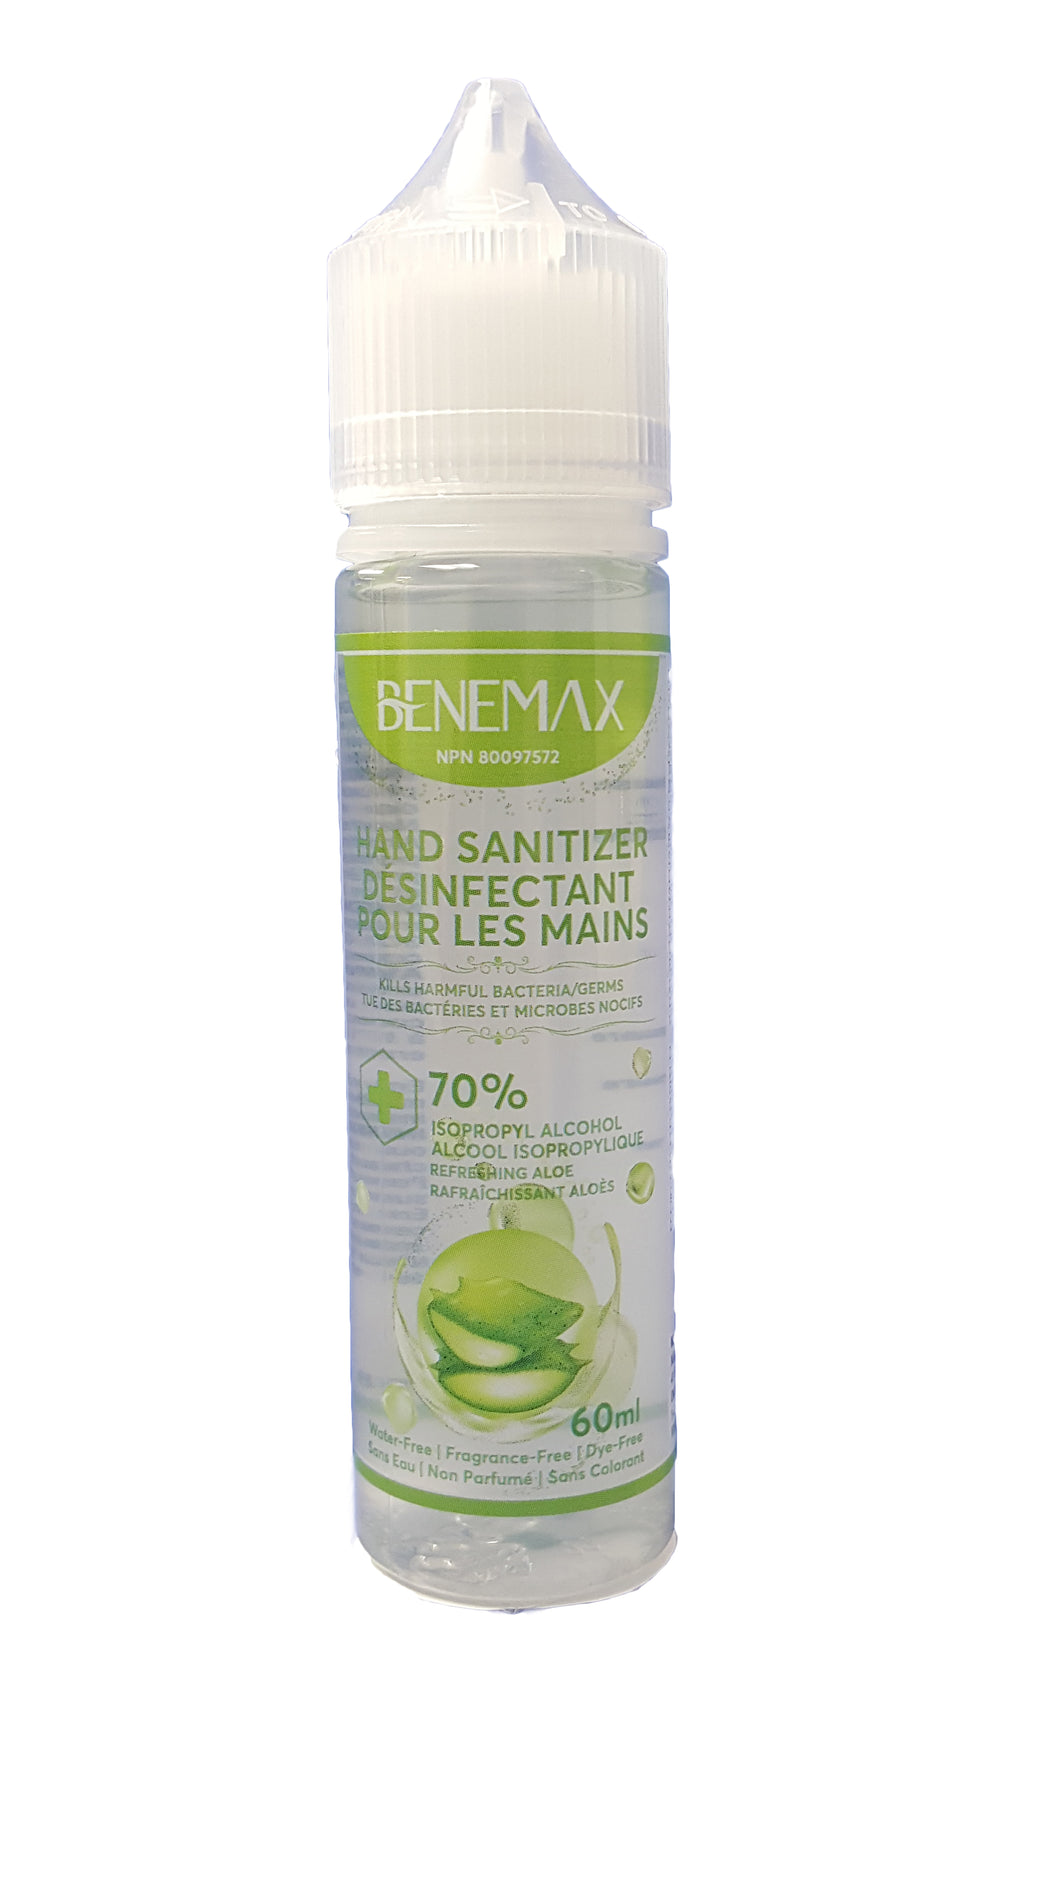 Benemax Hand Sanitizer, 60ml